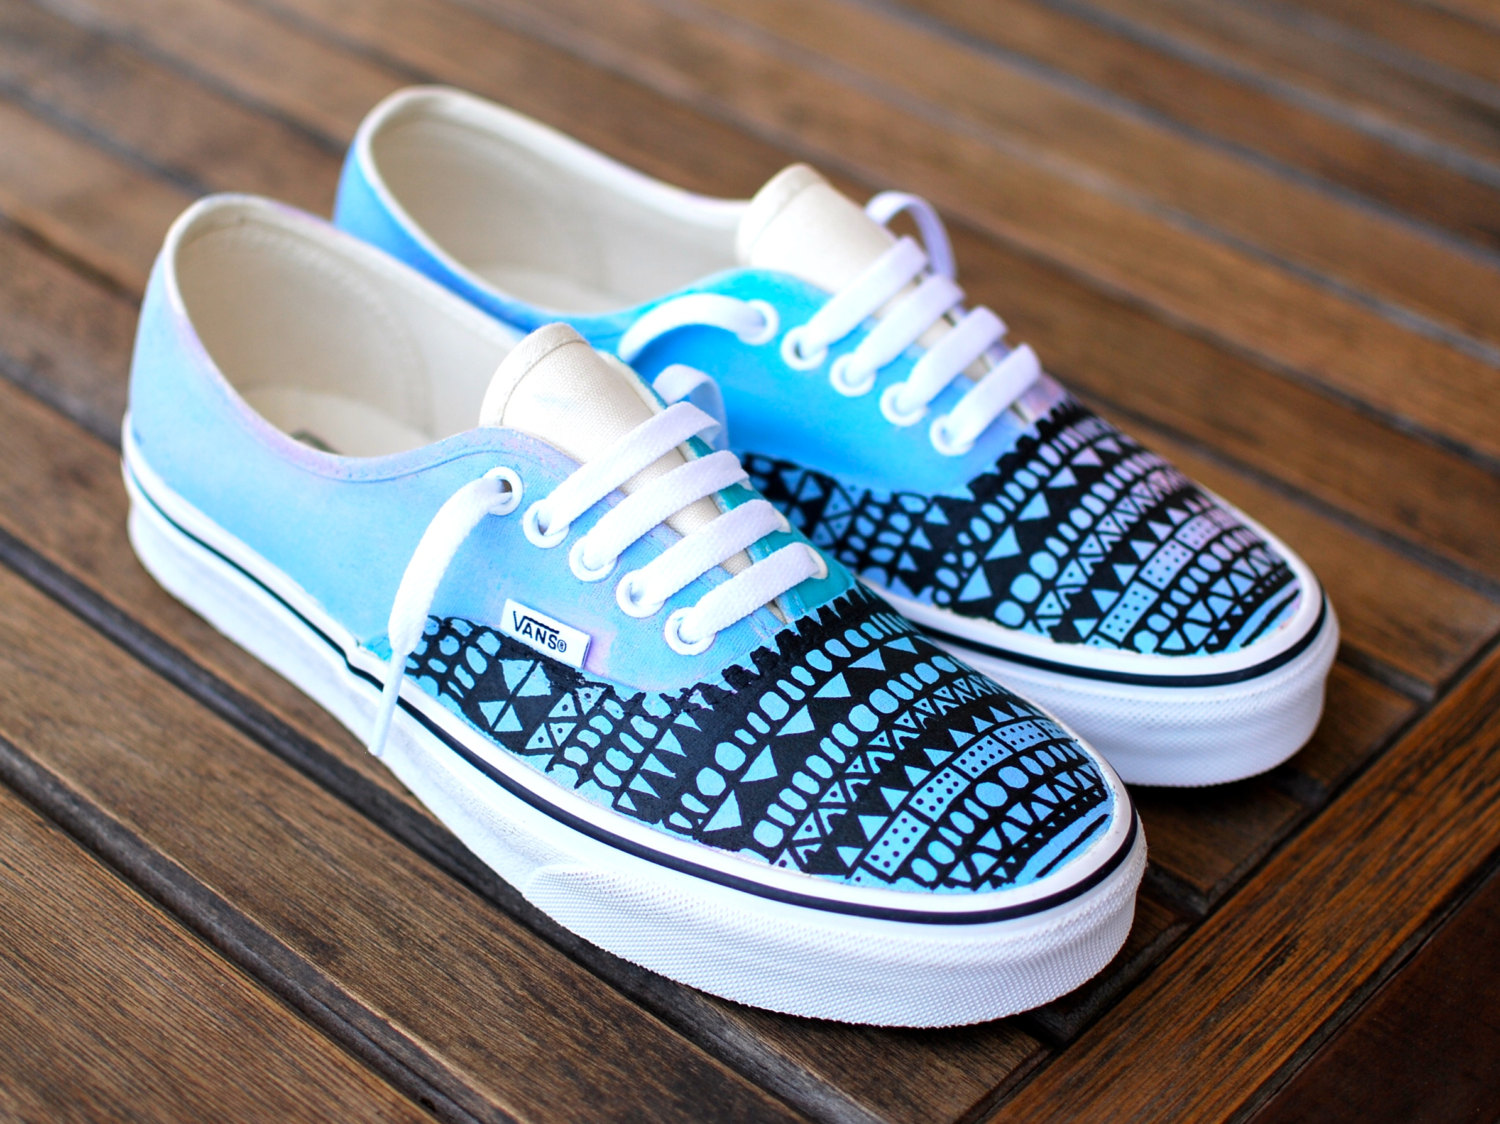 888d44f62398cb Custom Hand Painted Pastel Tribal Vans Authentic shoes - customizable